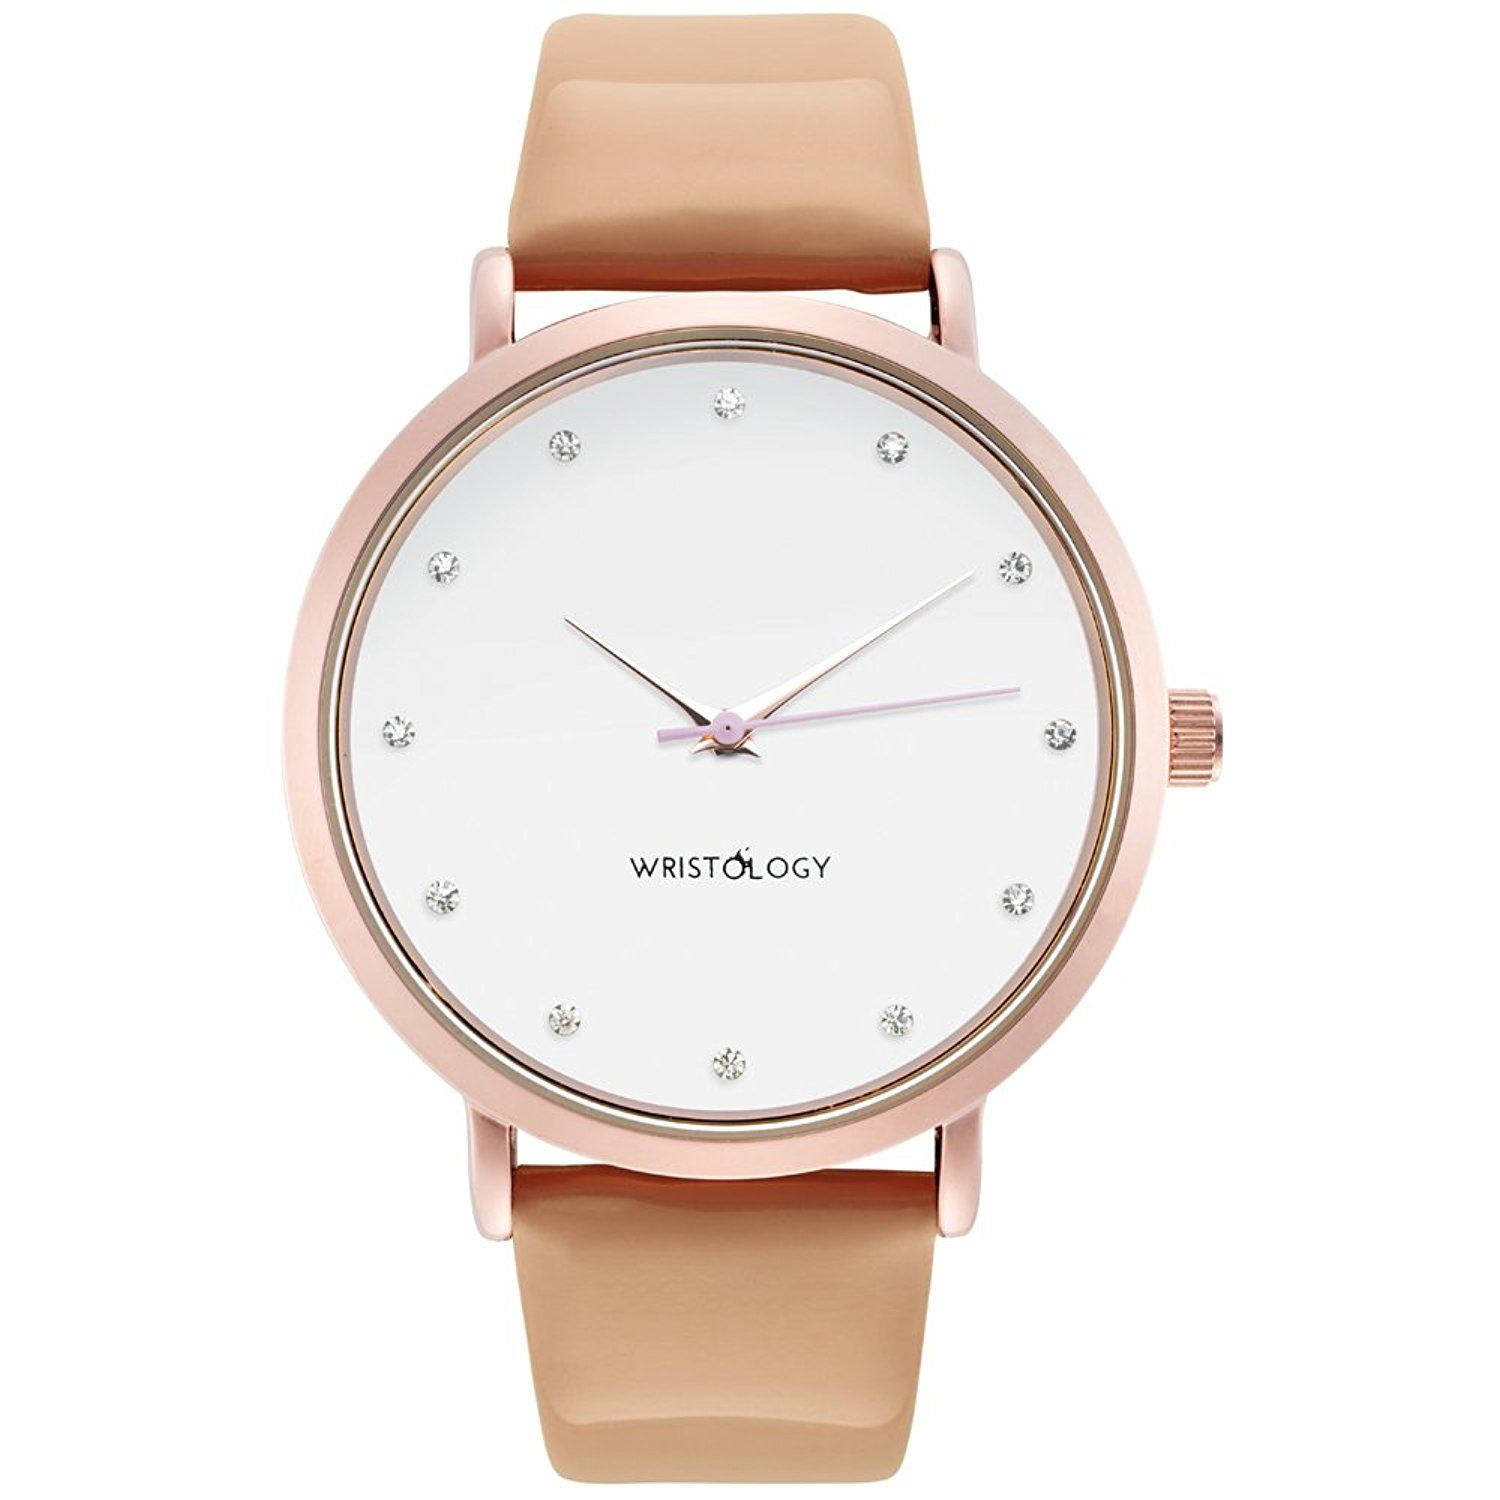 WRISTOLOGY Olivia Womens Crystal Rose Gold Boyfriend Watch Tan Sand Patent  Leather Strap     Unbelievable item right here! dac362bf9